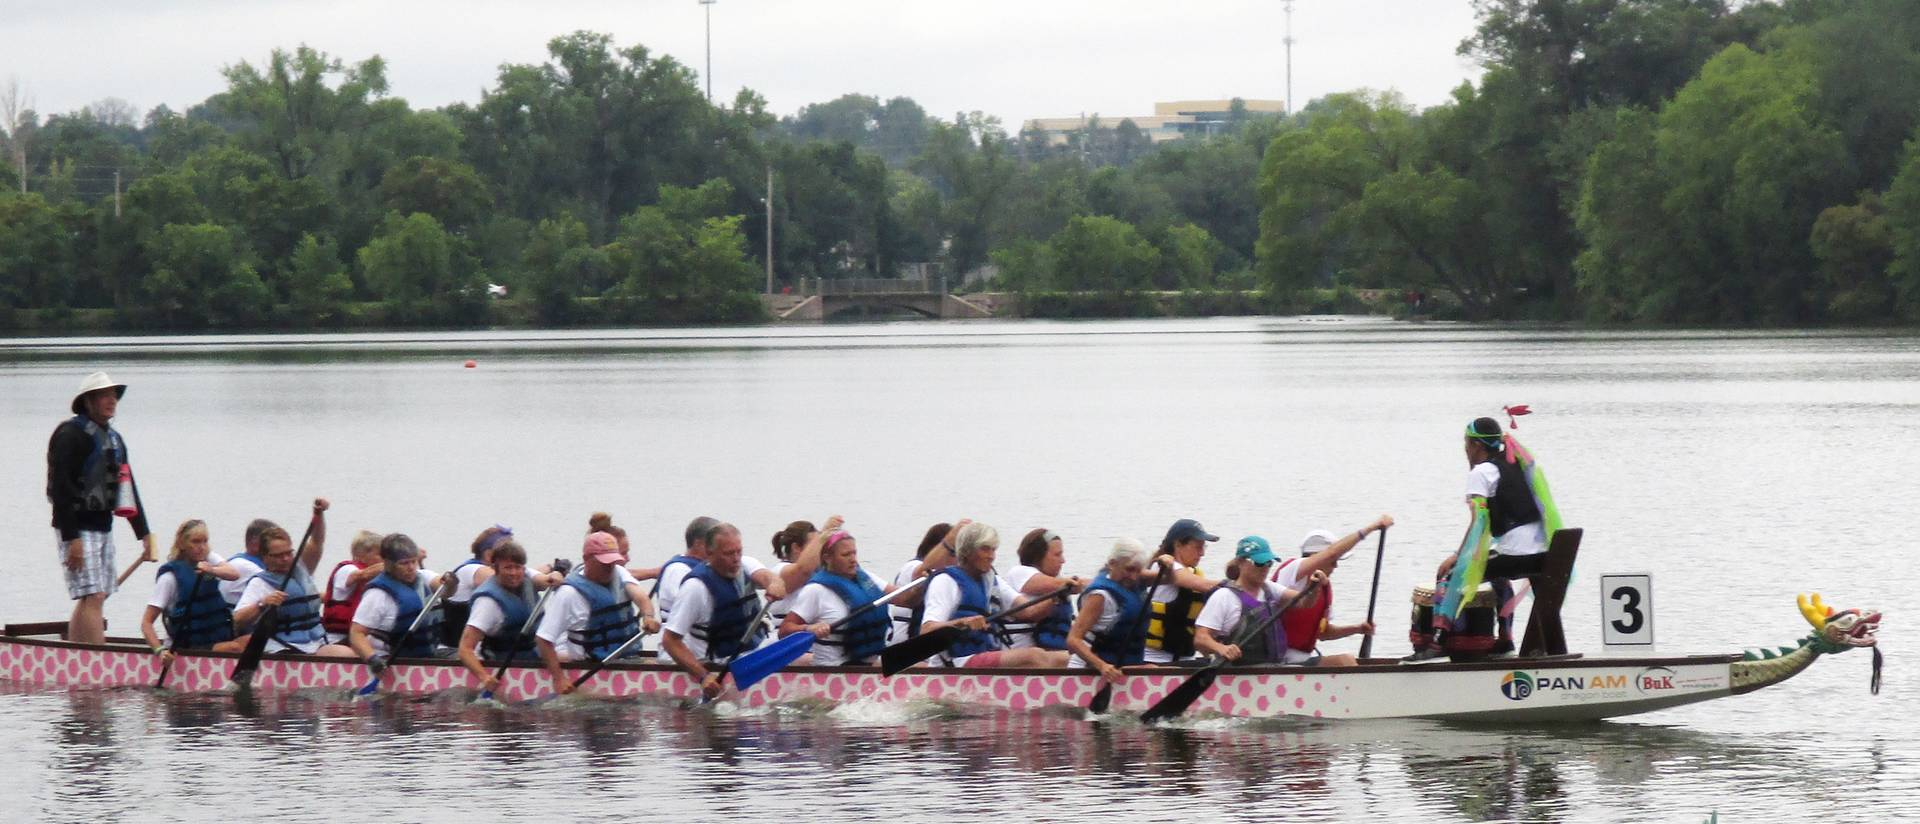 Dragon boat on Half Moon Lake in Eau Claire, WI